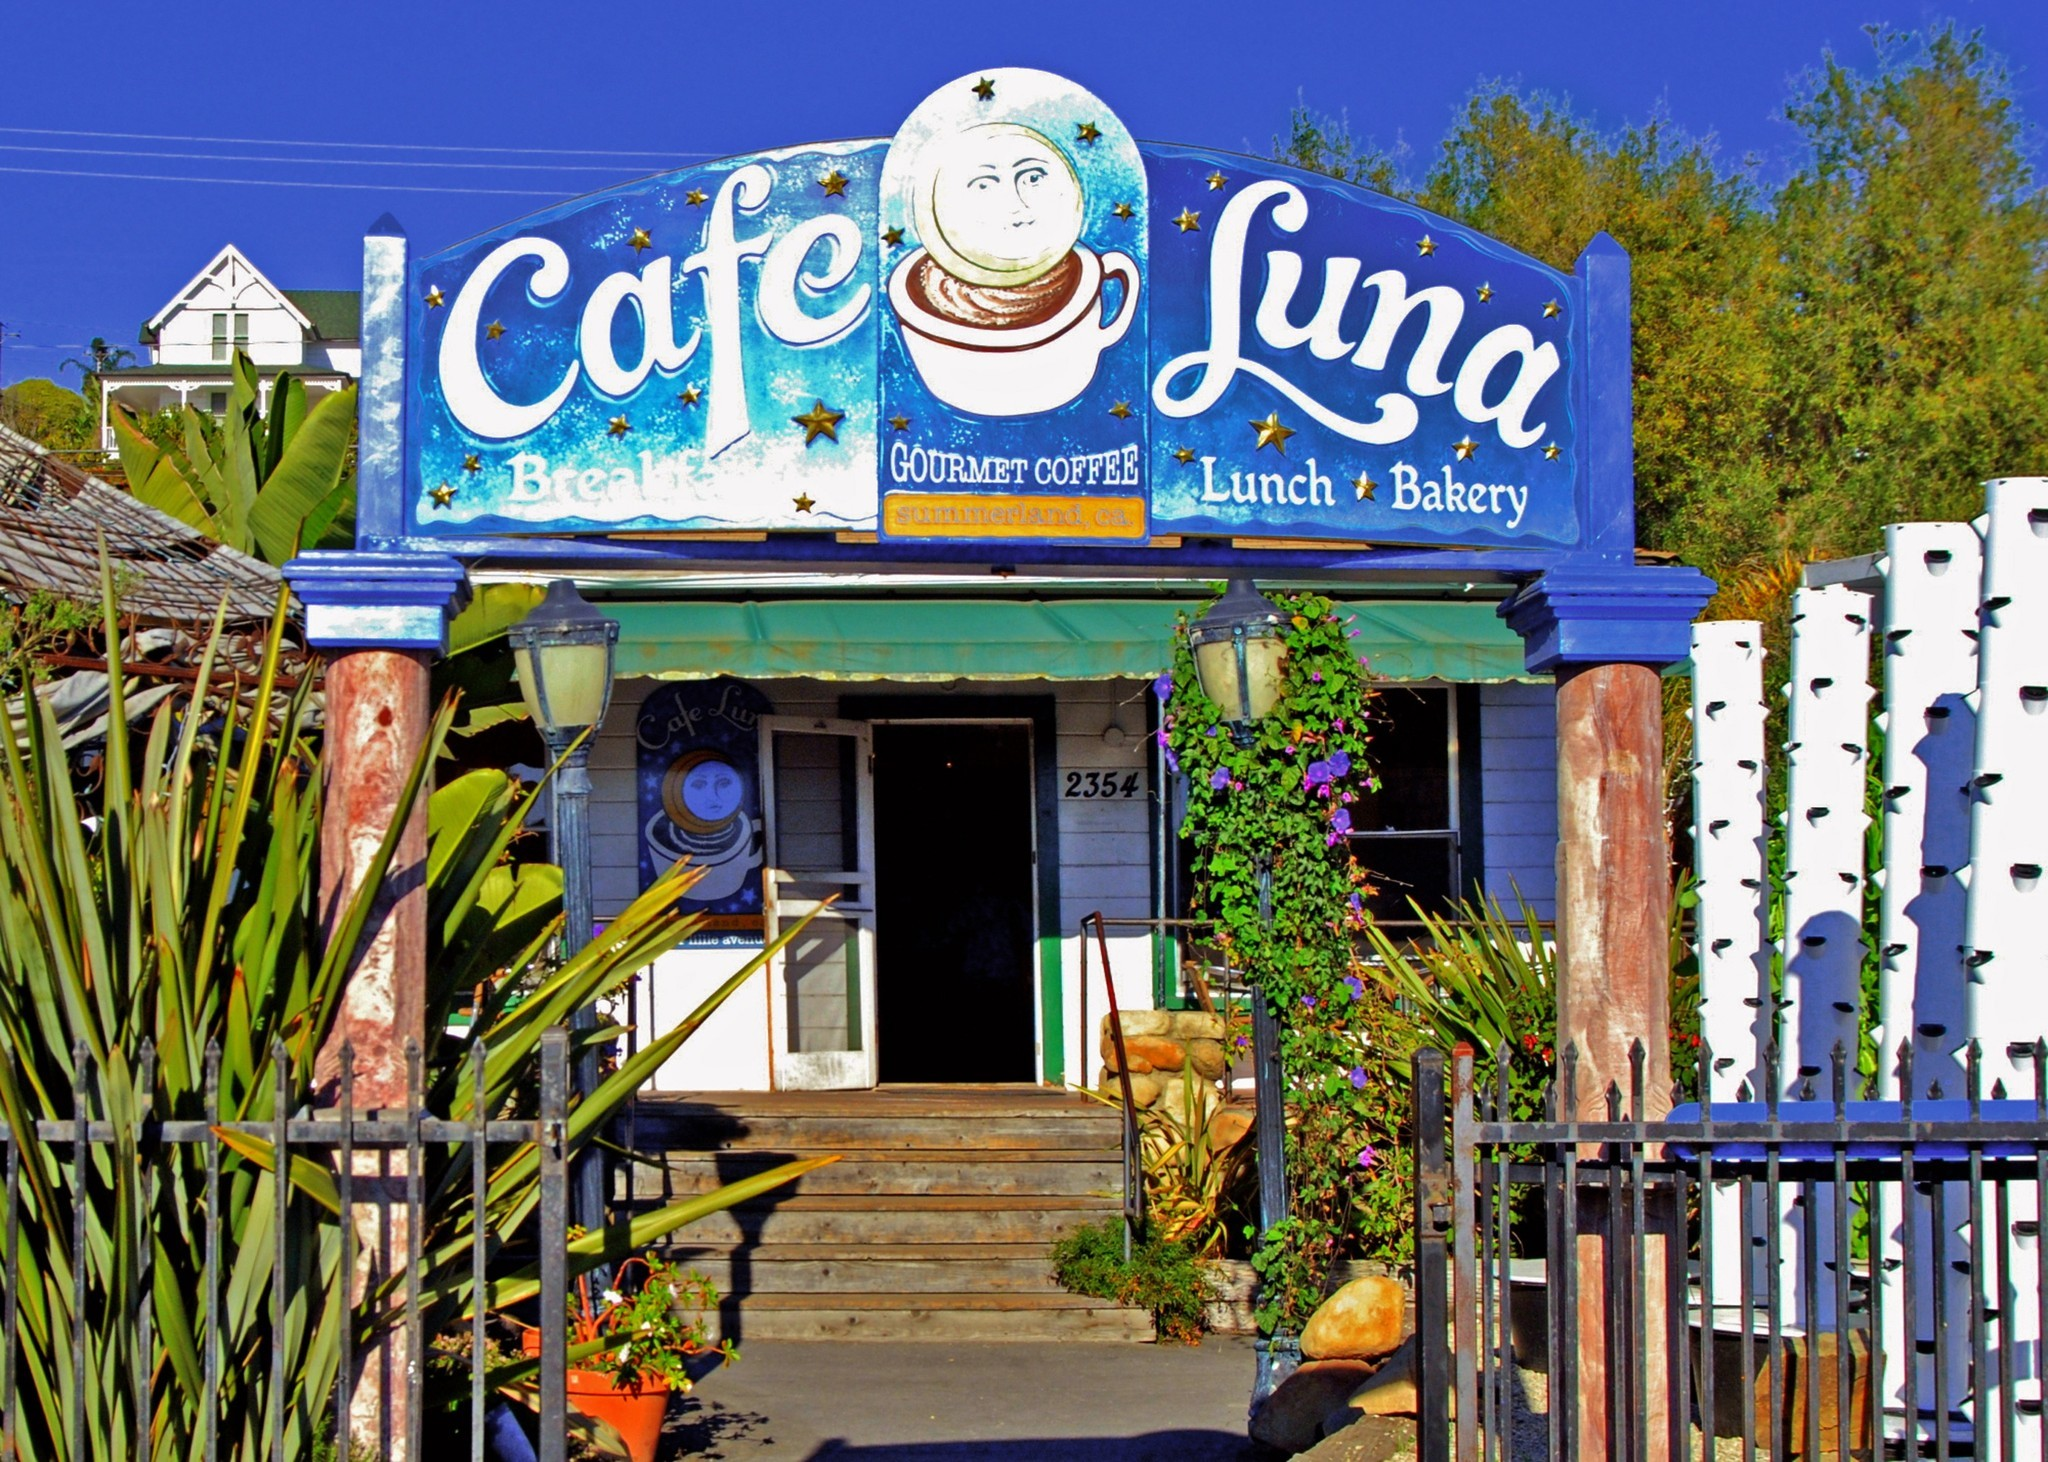 A getaway to sunny Summerland - Cafe Luna